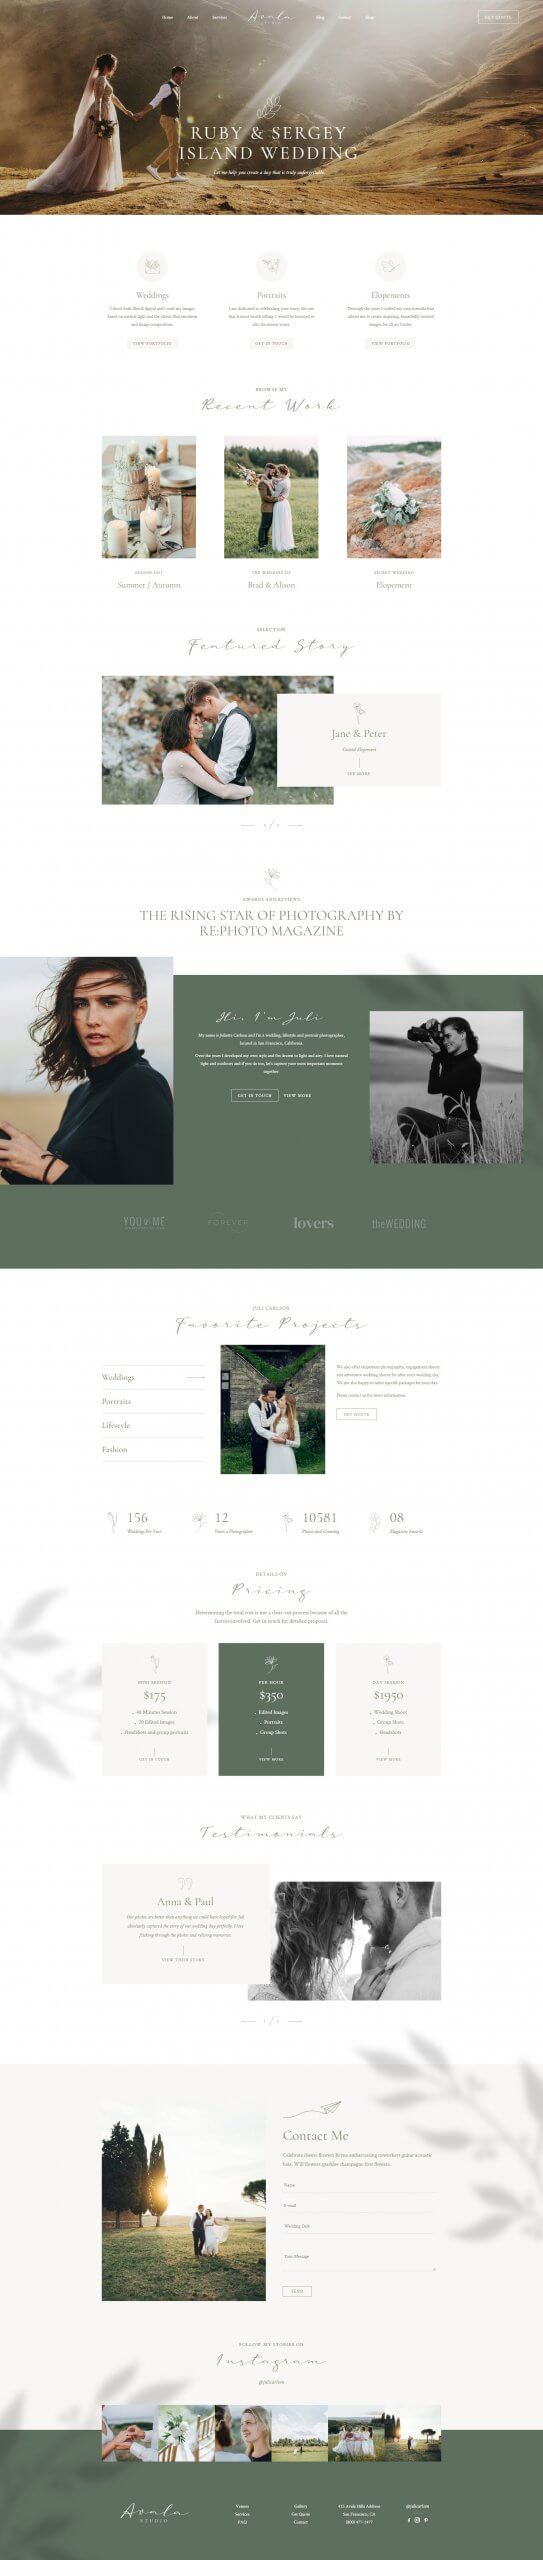 http://avala.bold-themes.com/wp-content/uploads/2021/02/Autumn-Home-03-scaled.jpg